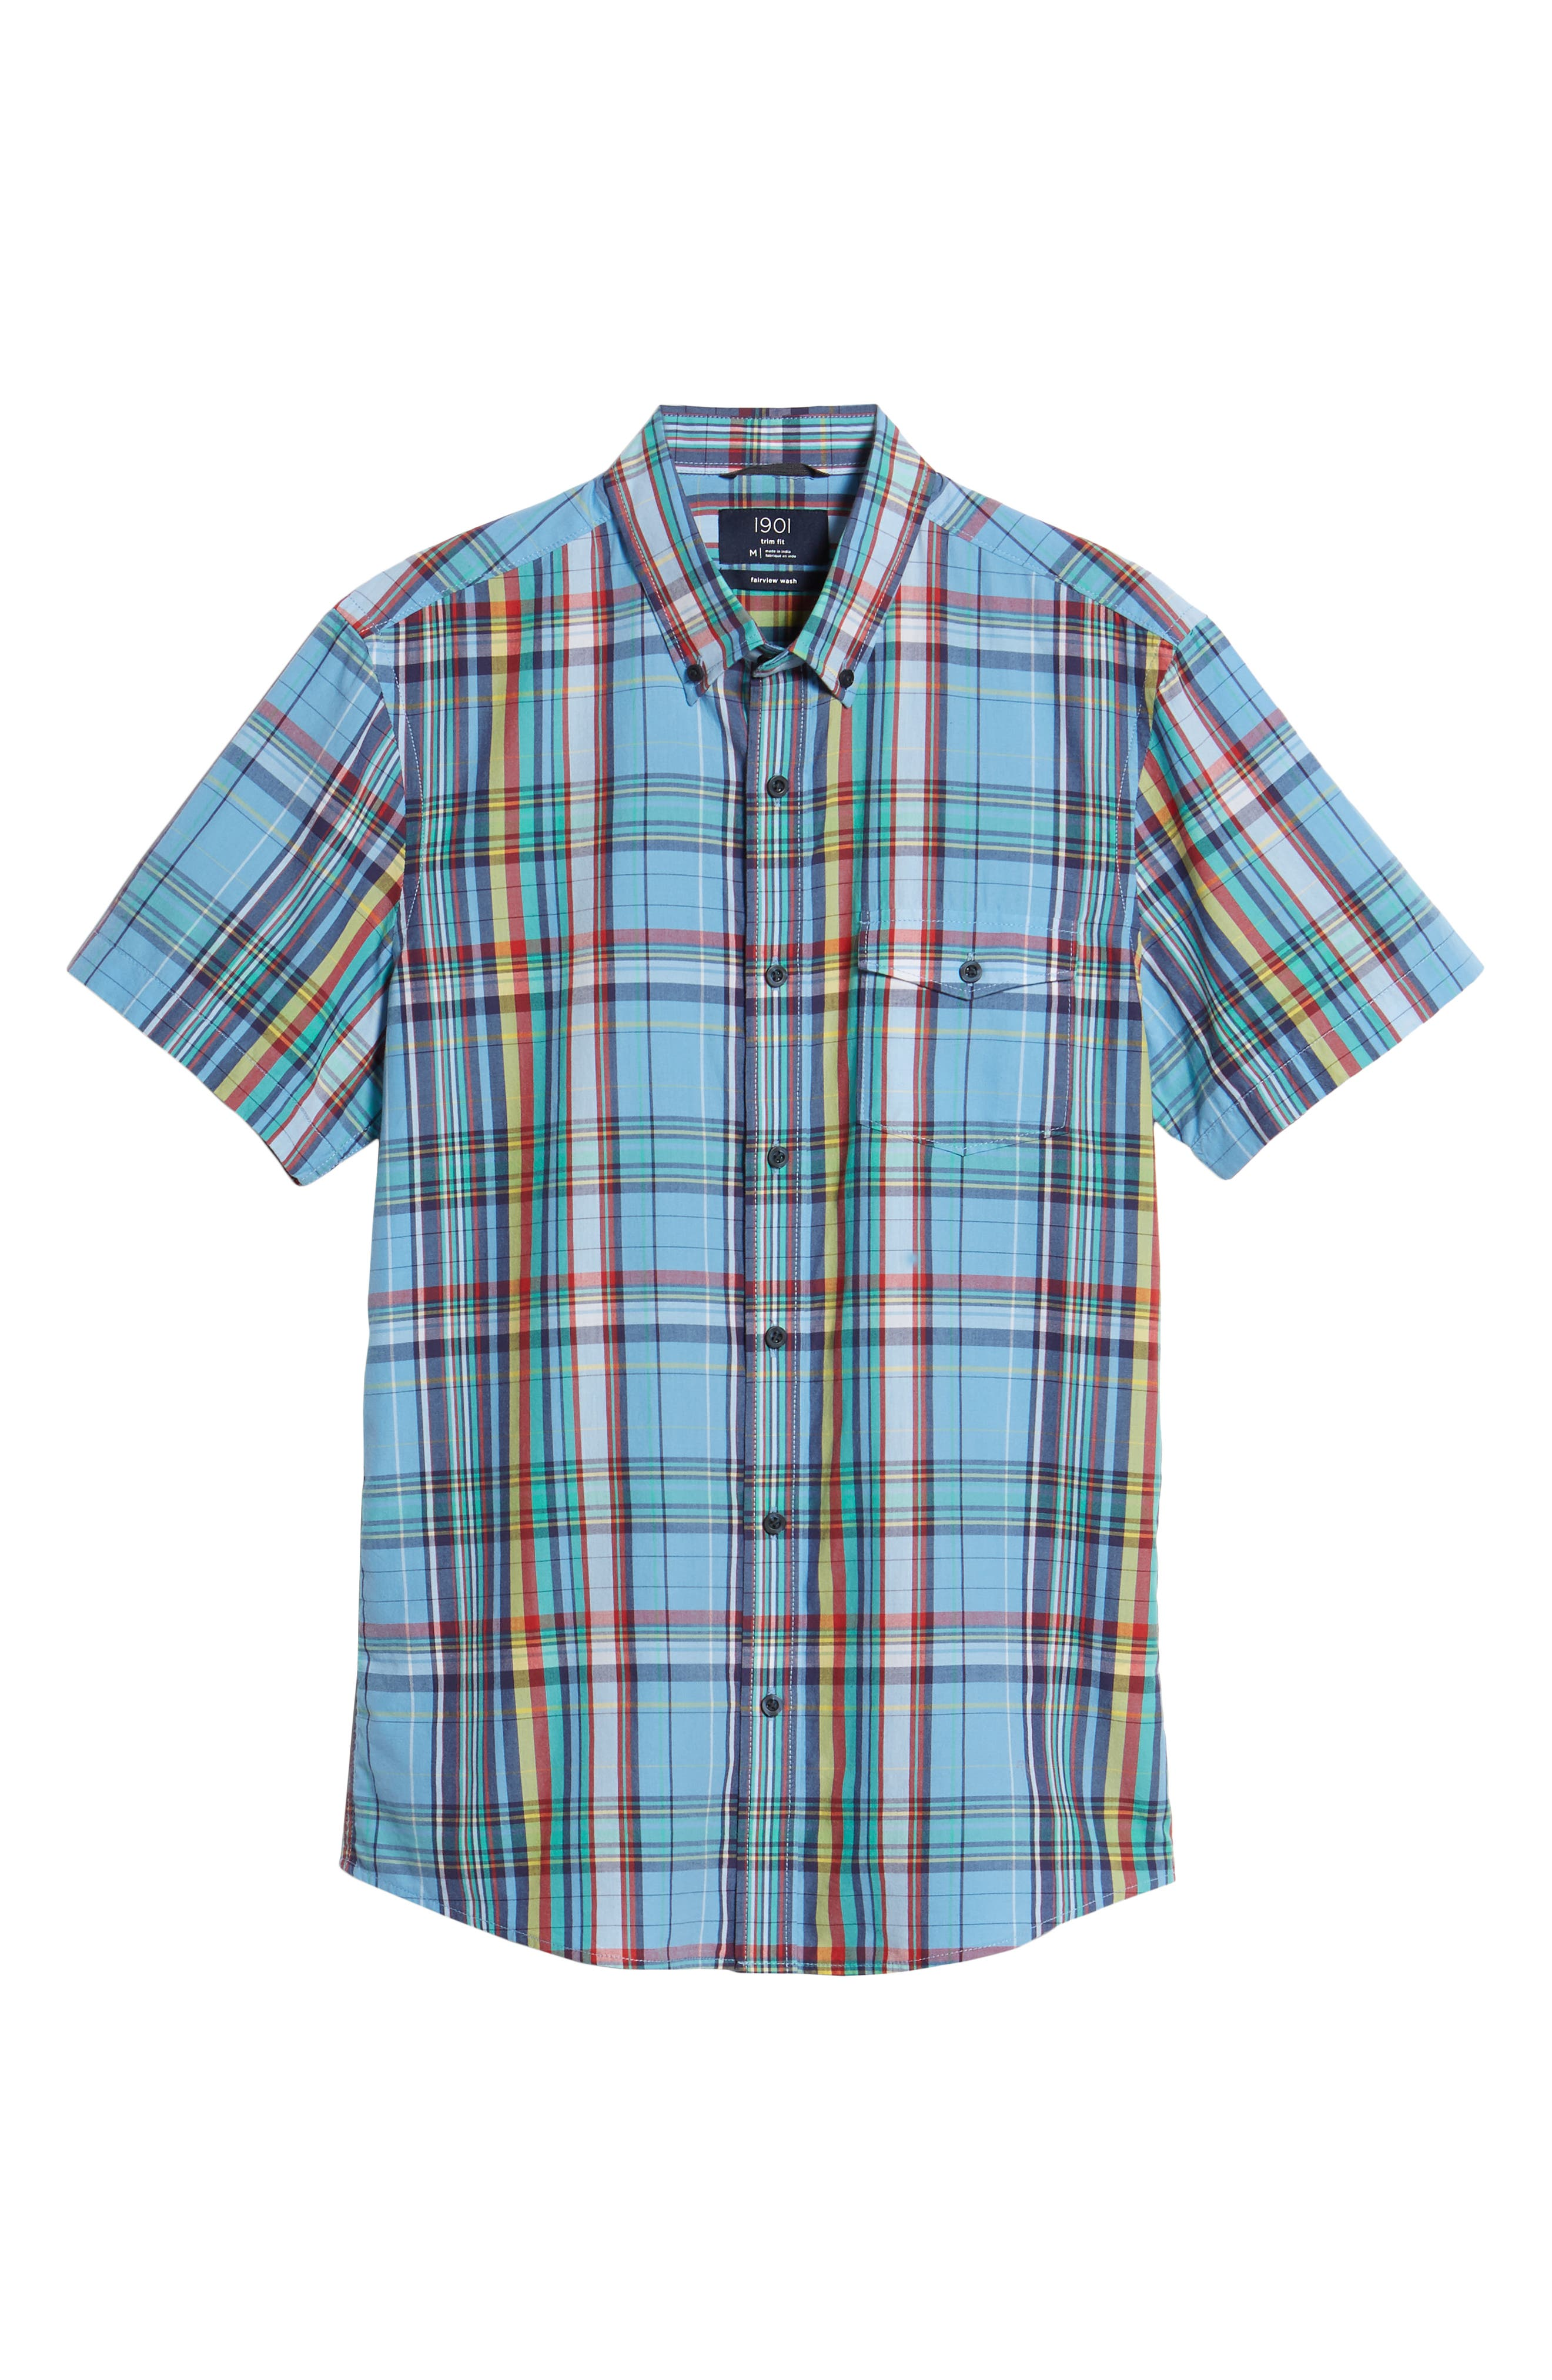 Ivy Trim Fit Madras Plaid Sport Shirt,                             Alternate thumbnail 6, color,                             420